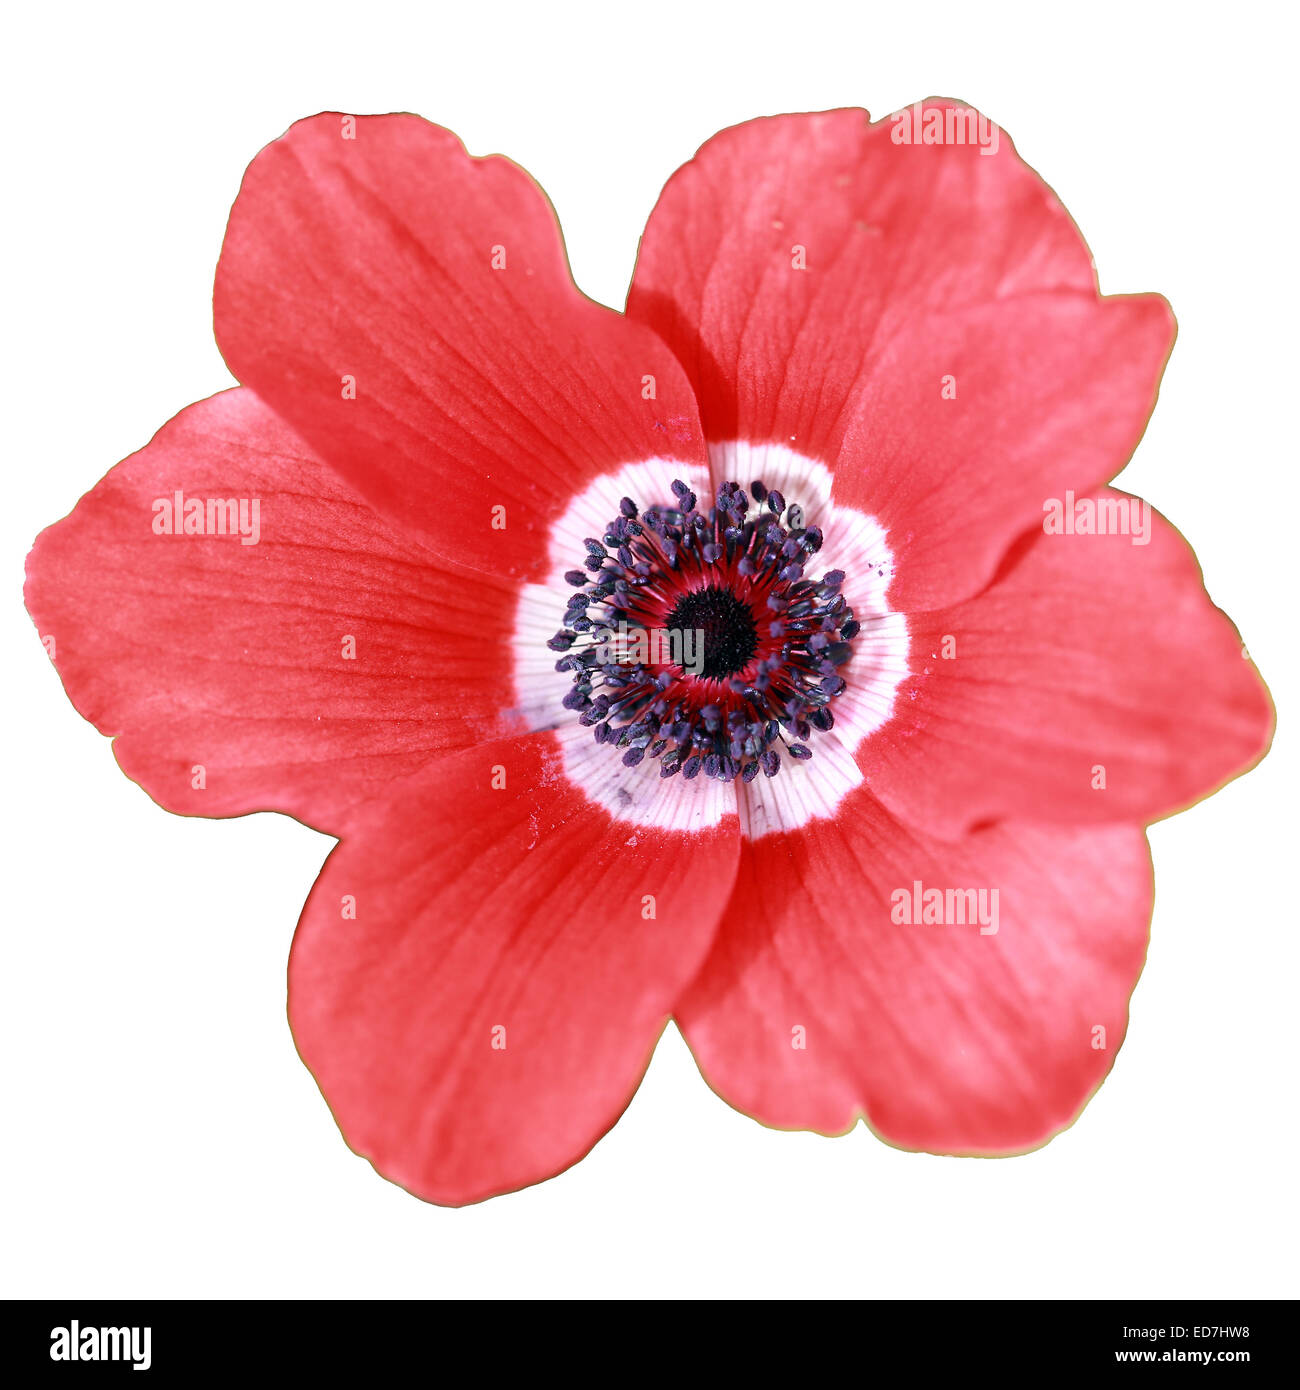 Red anemone flower on white background stock photos red anemone beautiful red flower anemone coronaria on white background stock image mightylinksfo